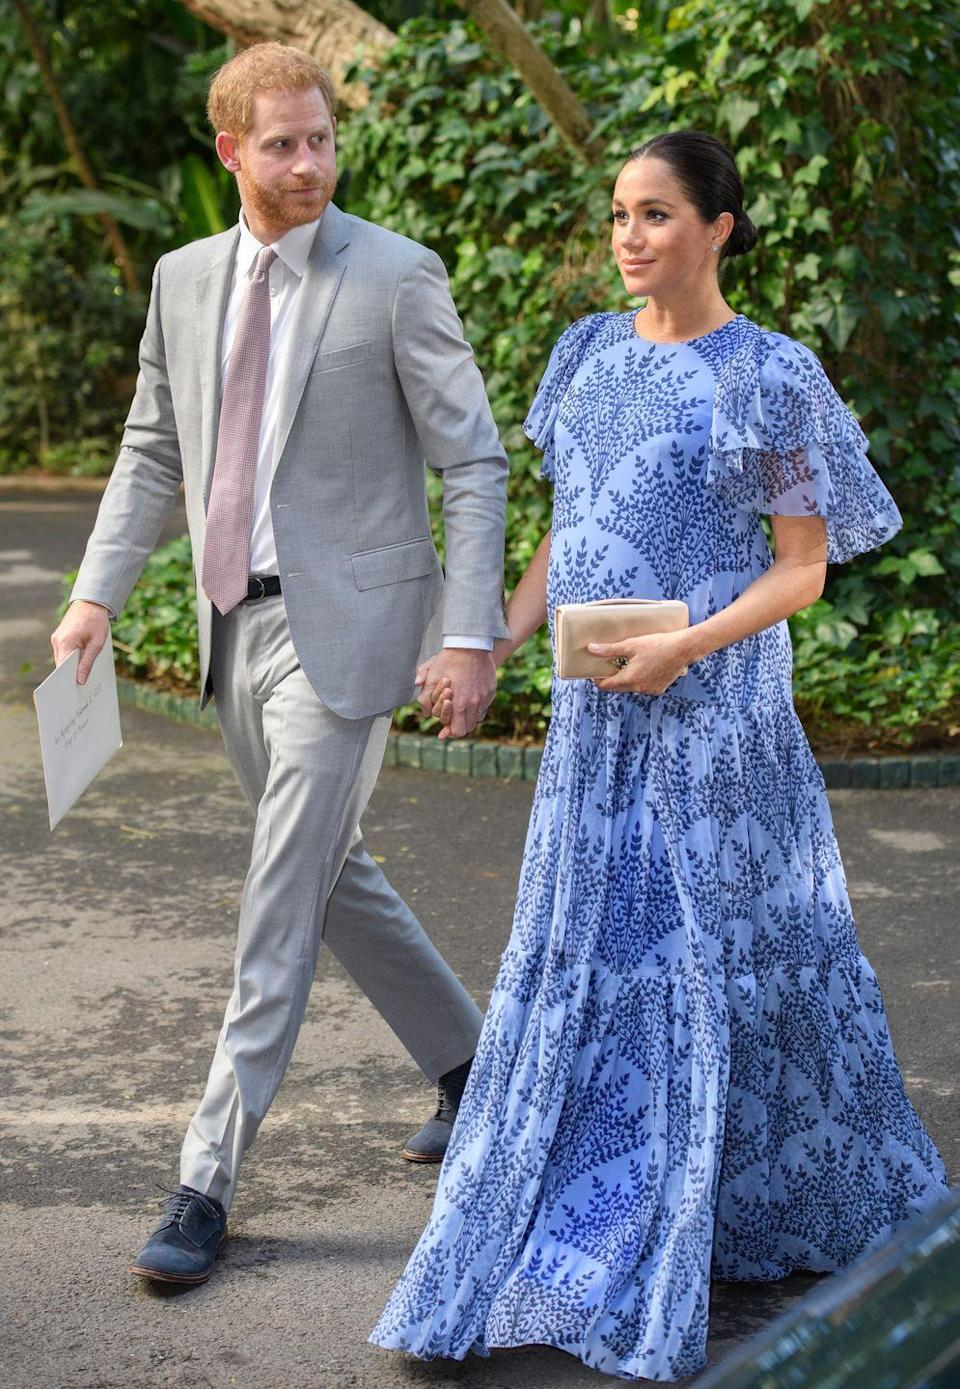 """<p>For her final engagement in Morocco, Meghan wore a <a href=""""https://go.redirectingat.com?id=74968X1596630&url=https%3A%2F%2Fwww.modaoperandi.com%2Fcarolina-herrera-fw19%2Ffloral-printed-silk-chiffon-short-sleeve-gown%3Fmid%3D37385%26siteID%3DTnL5HPStwNw-GHPwCiOCcKATKWaoYP.rXQ&sref=https%3A%2F%2Fwww.townandcountrymag.com%2Fstyle%2Ffashion-trends%2Fg3272%2Fmeghan-markle-preppy-style%2F"""" rel=""""nofollow noopener"""" target=""""_blank"""" data-ylk=""""slk:blue printed Carolina Herrera gown"""" class=""""link rapid-noclick-resp"""">blue printed Carolina Herrera gown</a> to meet King Mohammed VI. The duchess pulled her hair back in a bun, carried the nude satin <a href=""""https://go.redirectingat.com?id=74968X1596630&url=https%3A%2F%2Fus.vestiairecollective.com%2Fwomen-bags%2Fdior%2Fd-bee%2F&sref=https%3A%2F%2Fwww.townandcountrymag.com%2Fstyle%2Ffashion-trends%2Fg3272%2Fmeghan-markle-preppy-style%2F"""" rel=""""nofollow noopener"""" target=""""_blank"""" data-ylk=""""slk:D-bee Dior clutch"""" class=""""link rapid-noclick-resp"""">D-bee Dior clutch</a> from the <a href=""""https://www.townandcountrymag.com/style/fashion-trends/a26496908/meghan-markle-cream-bespoke-dior-dress-morocco-photos/"""" rel=""""nofollow noopener"""" target=""""_blank"""" data-ylk=""""slk:previous night"""" class=""""link rapid-noclick-resp"""">previous night</a>. </p>"""